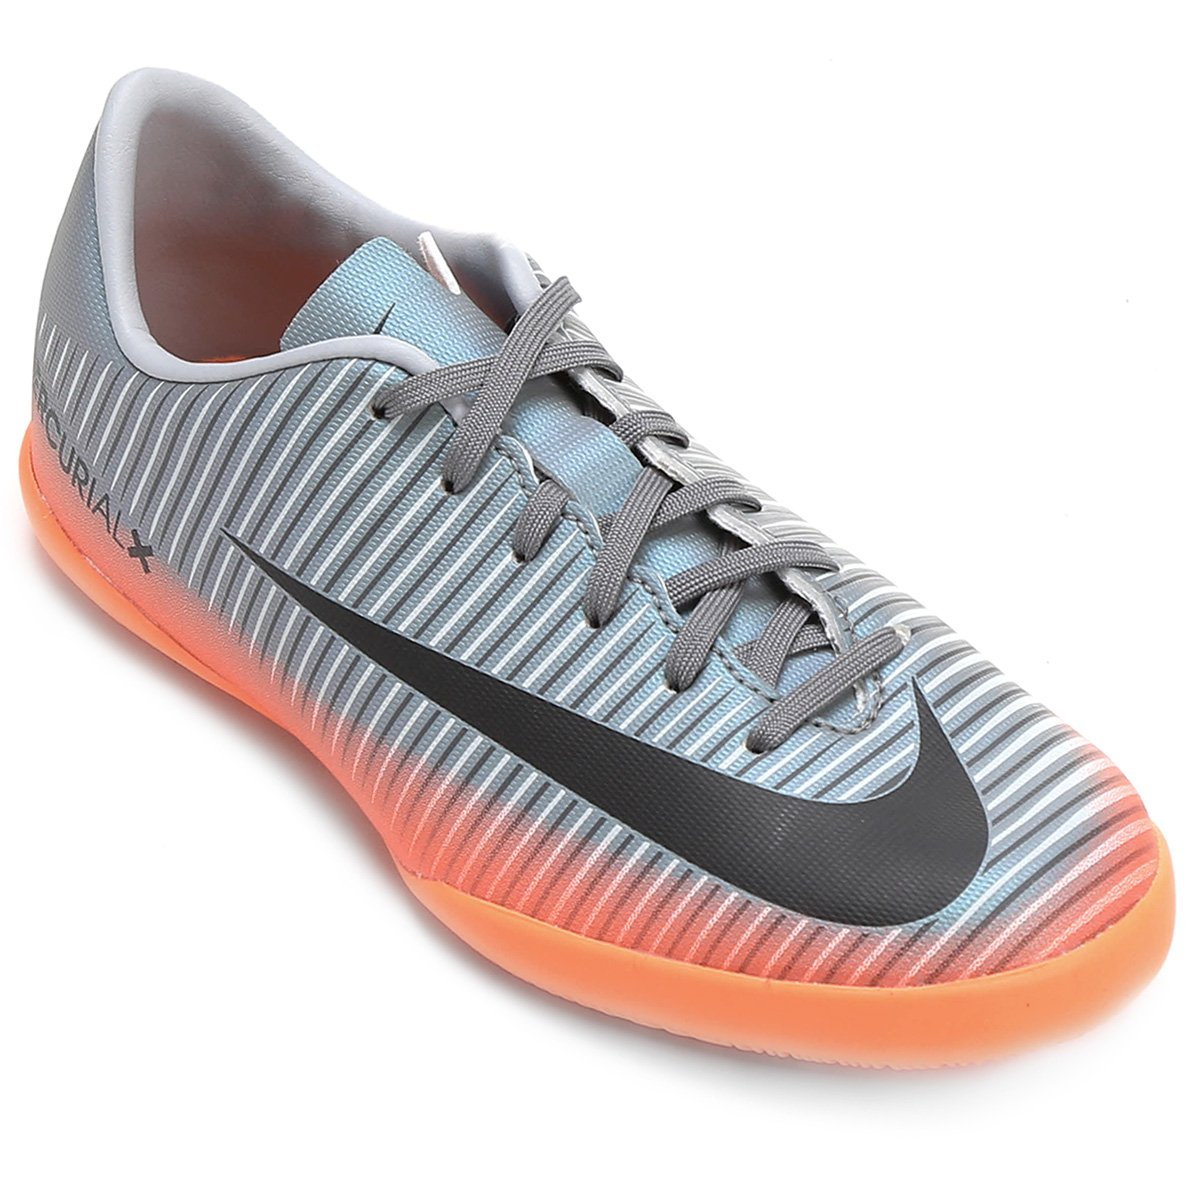 8d61368af8 Chuteira Futsal Infantil Nike Mercurial X Victory 6 CR7 IC - Compre Agora